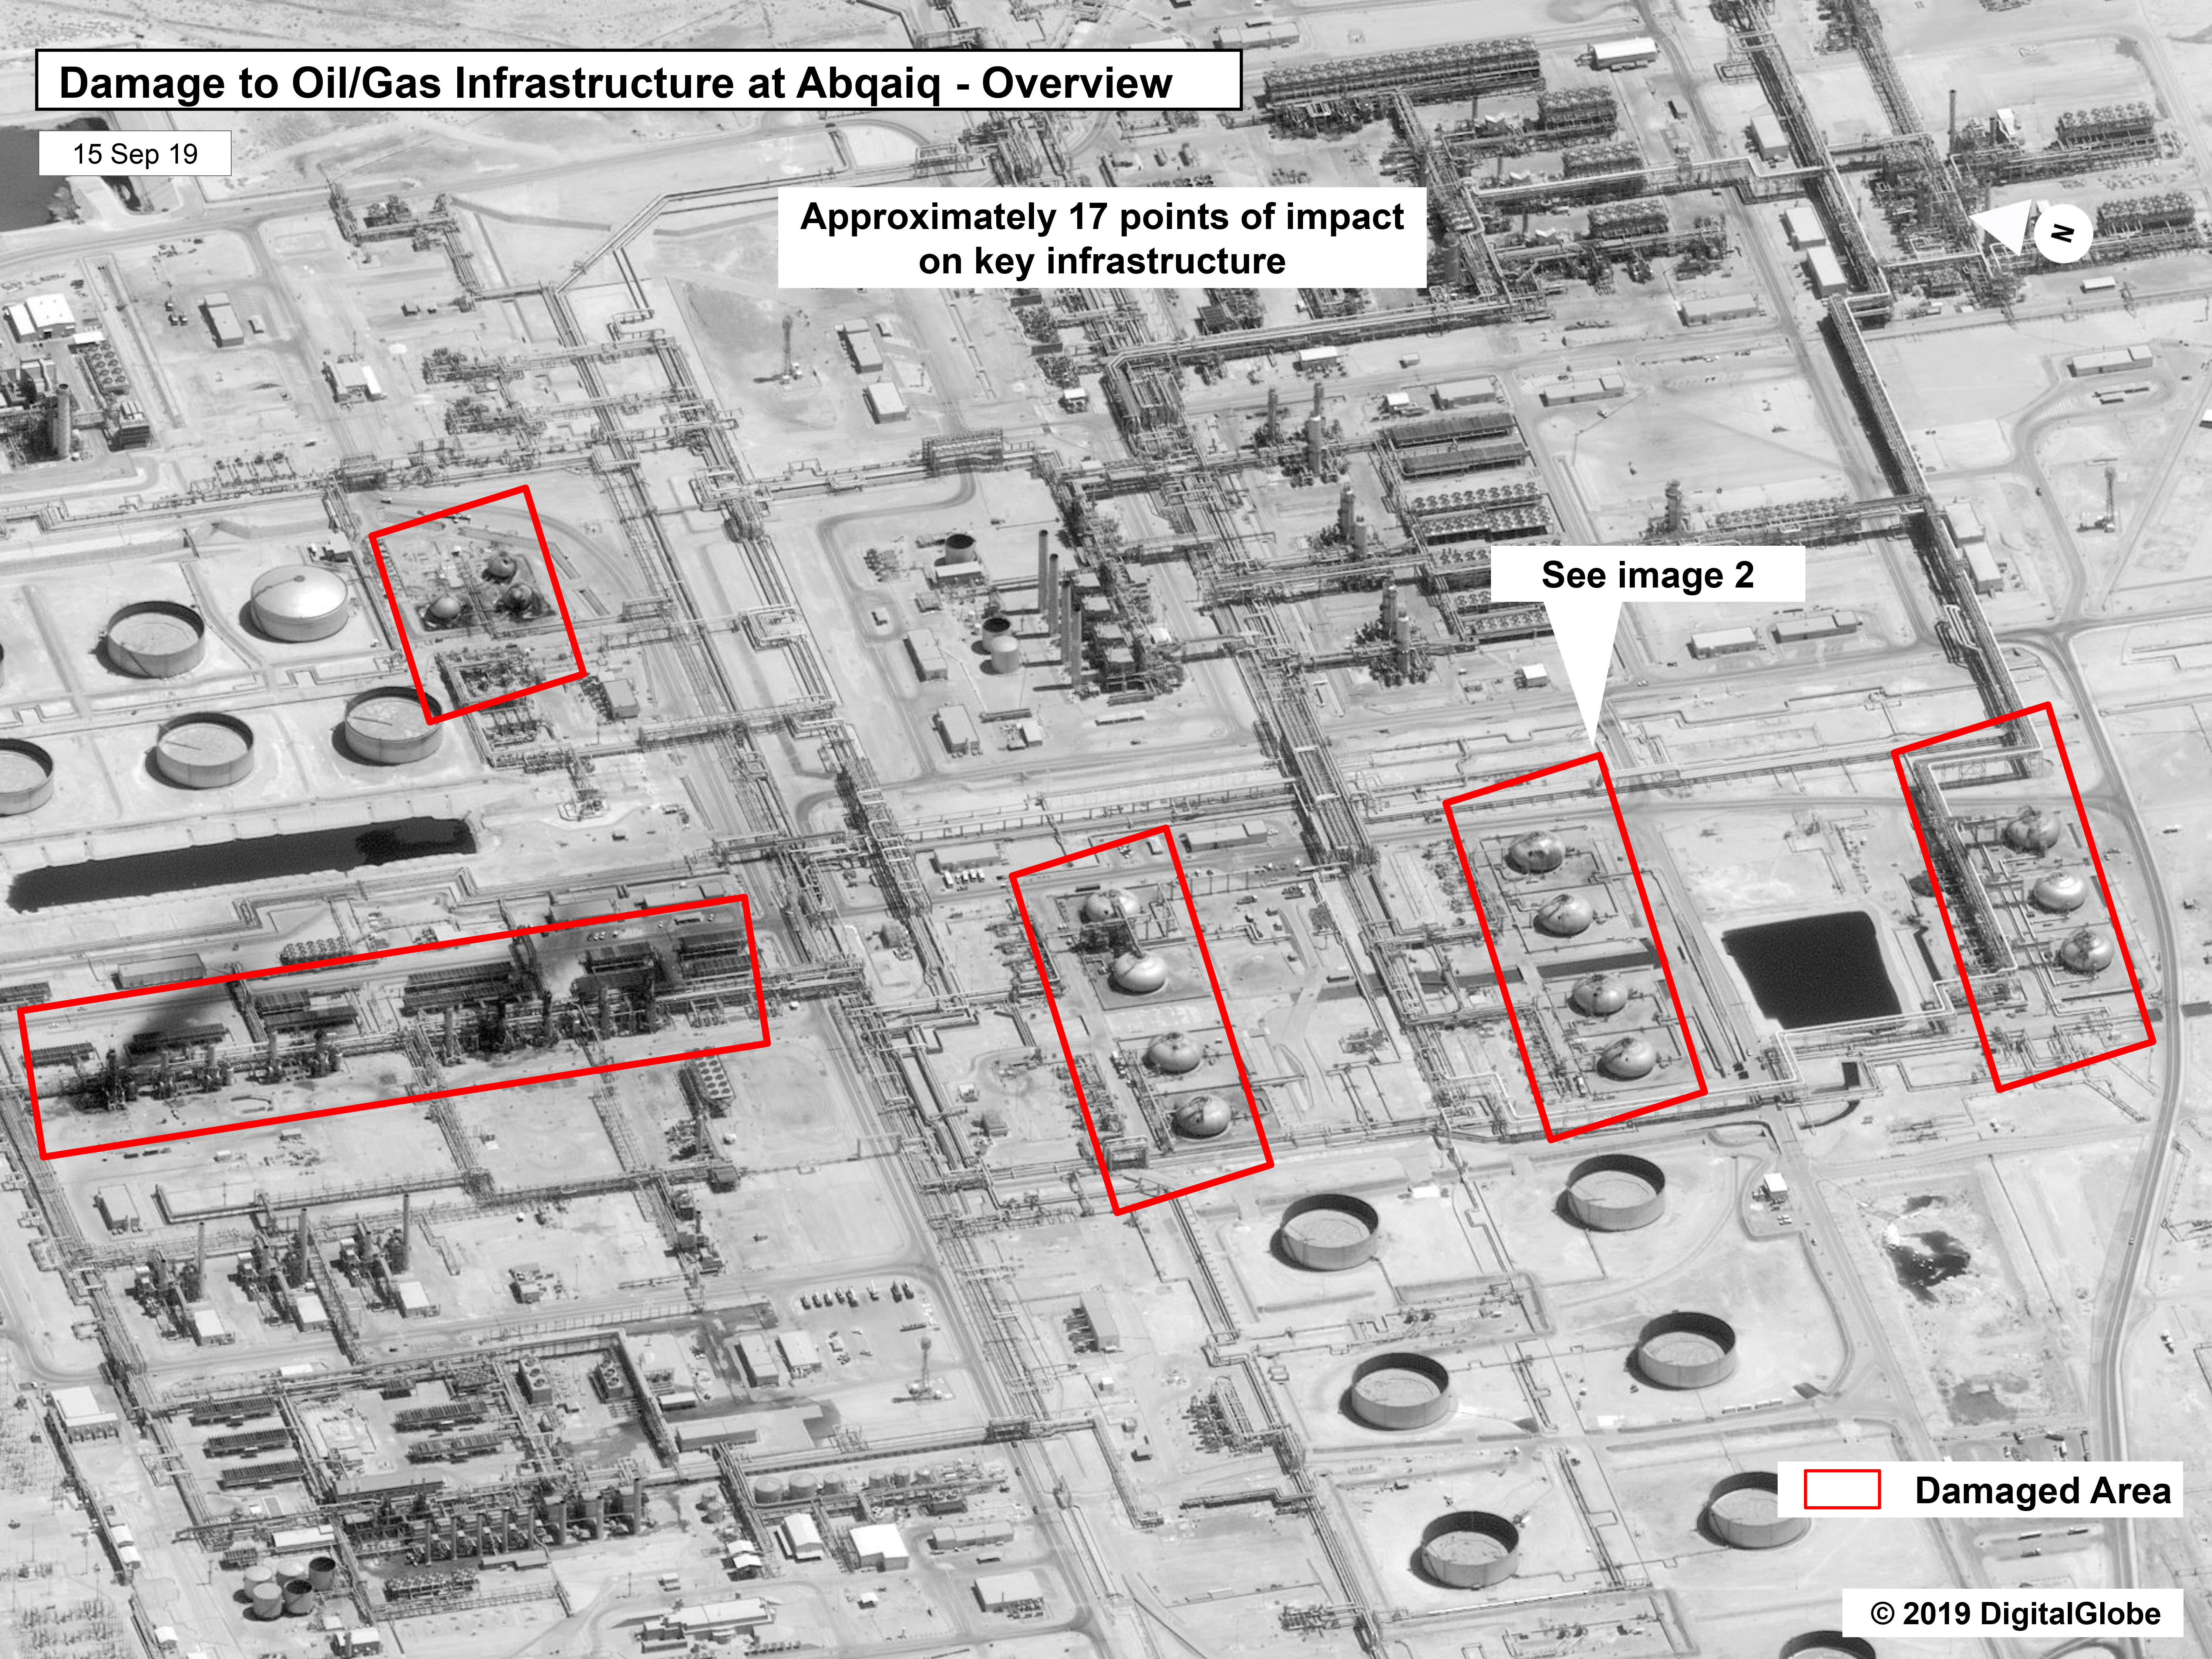 U.S. Satellites Detected Iran Readying Weapons Ahead Of Saudi Strike, Officials Say